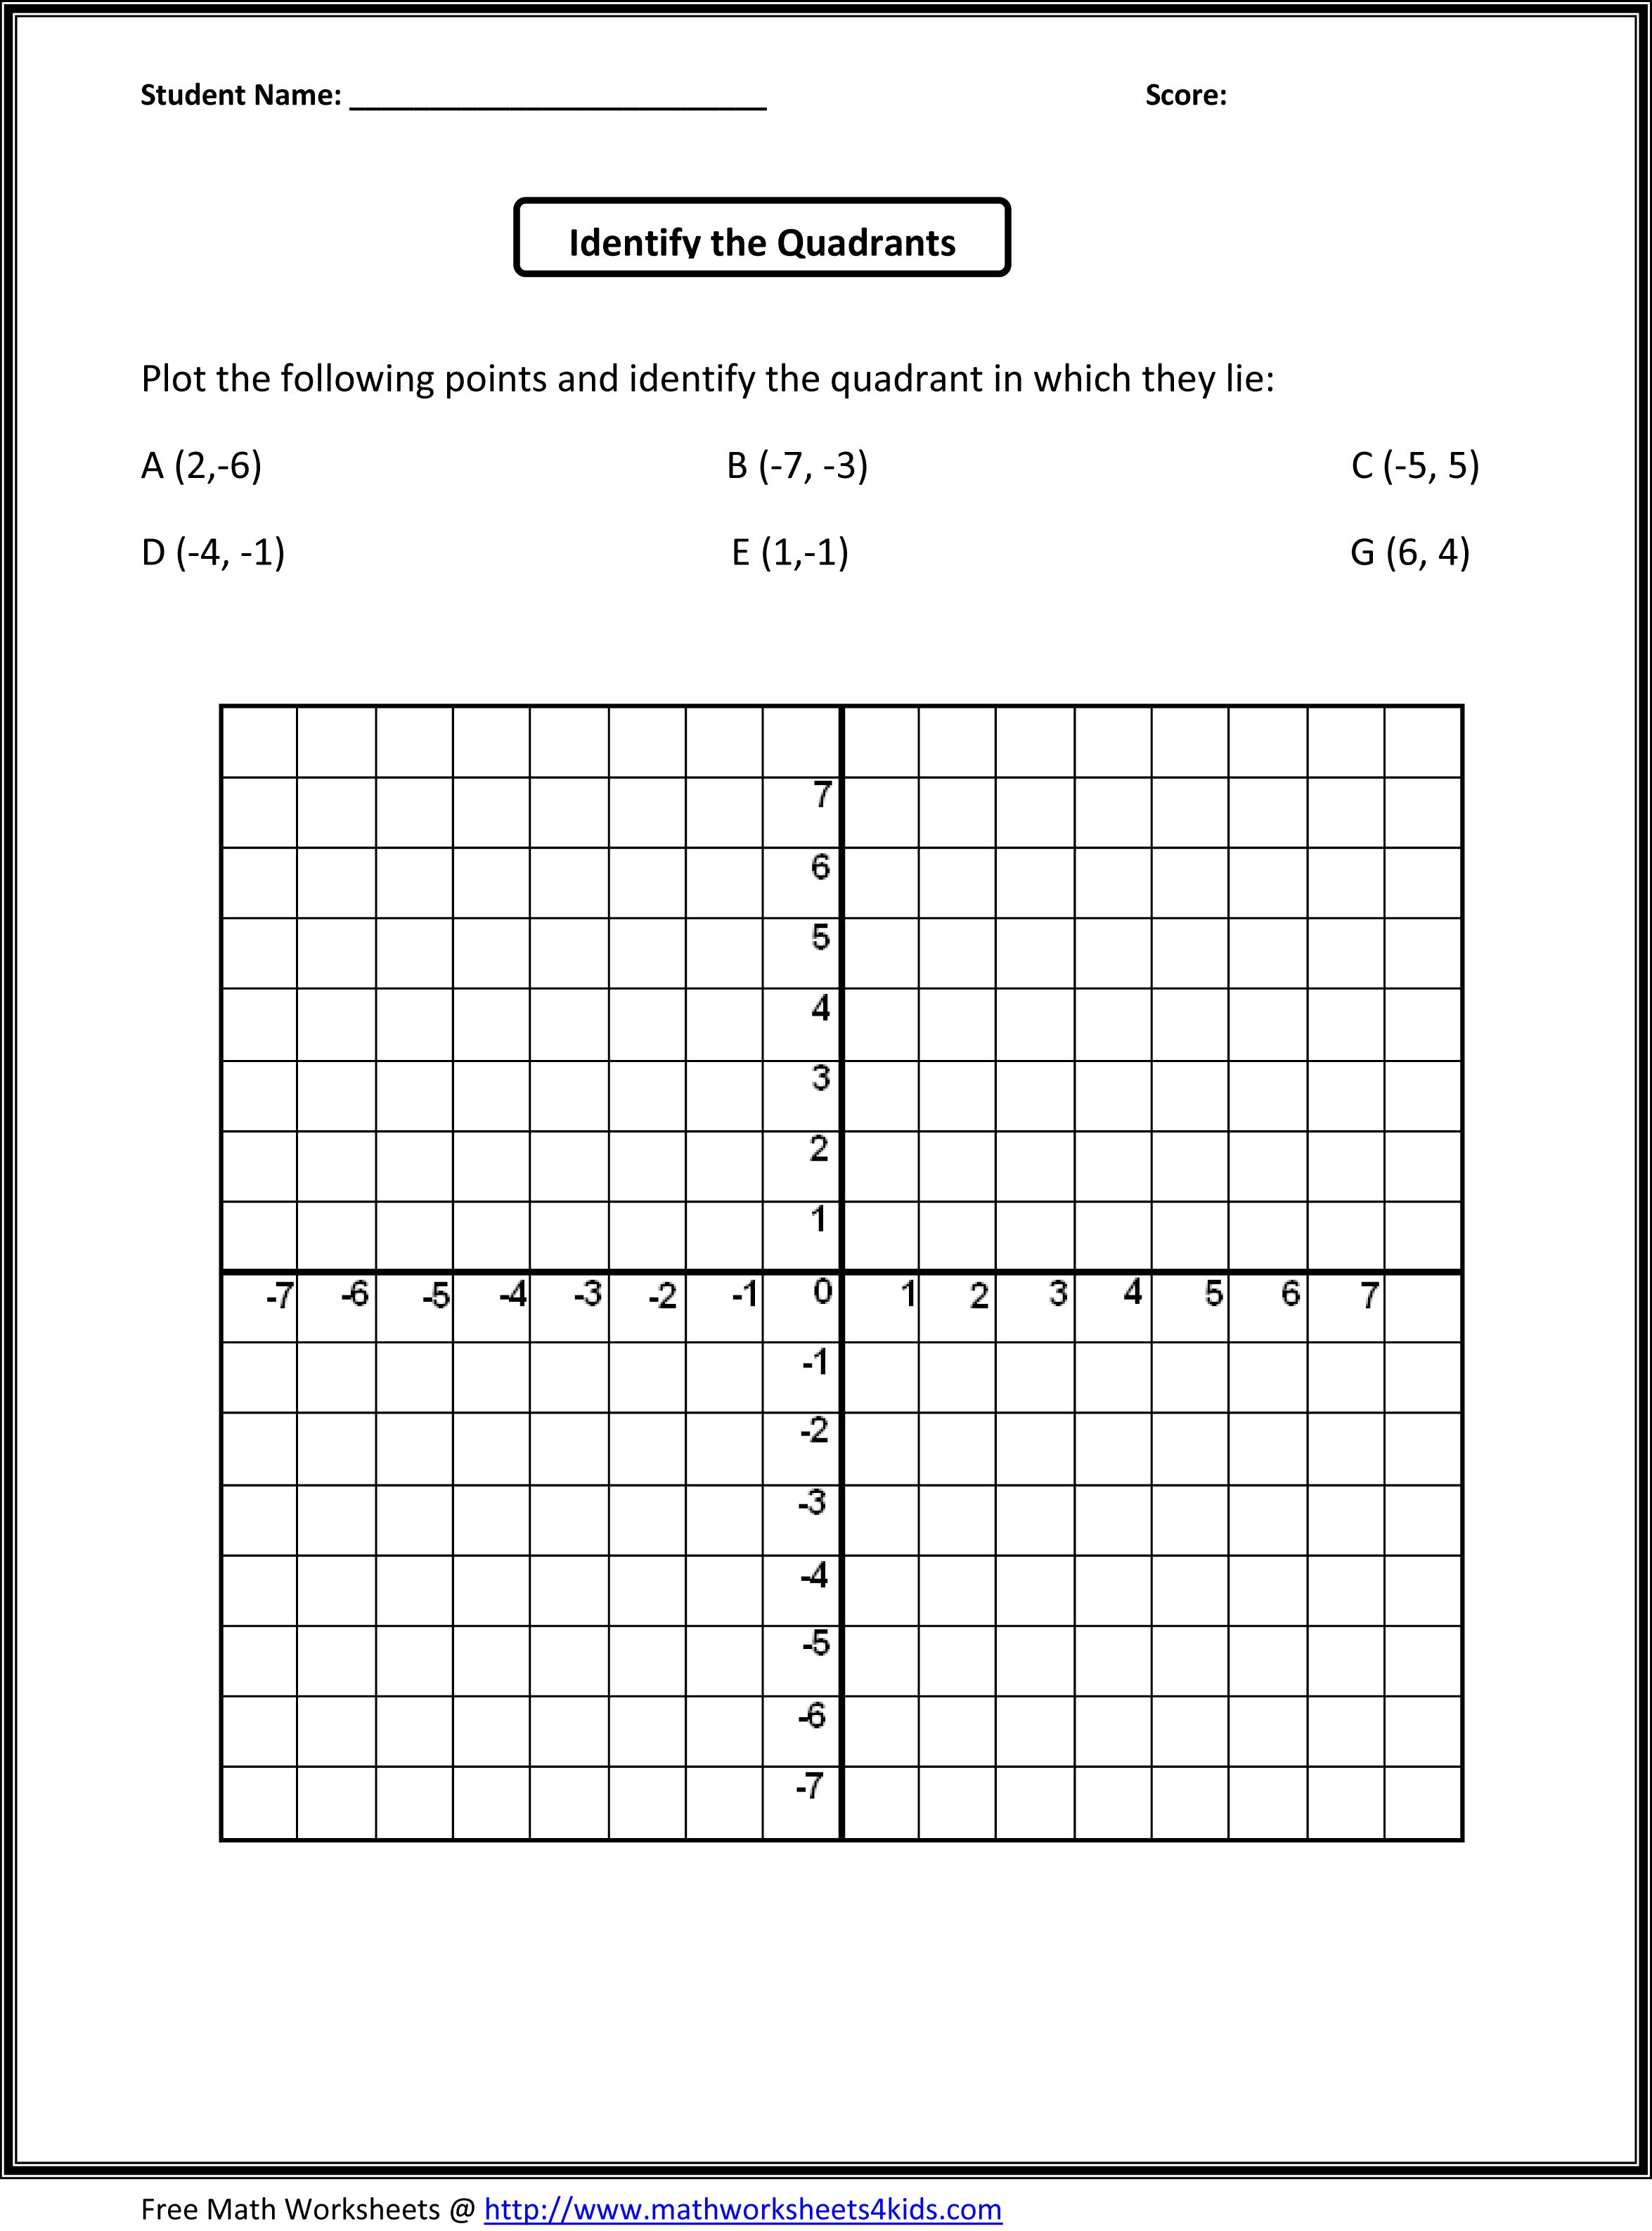 math worksheet : 1000 images about madi math on pinterest  5th grade math  : Math Worksheets For Grade 6